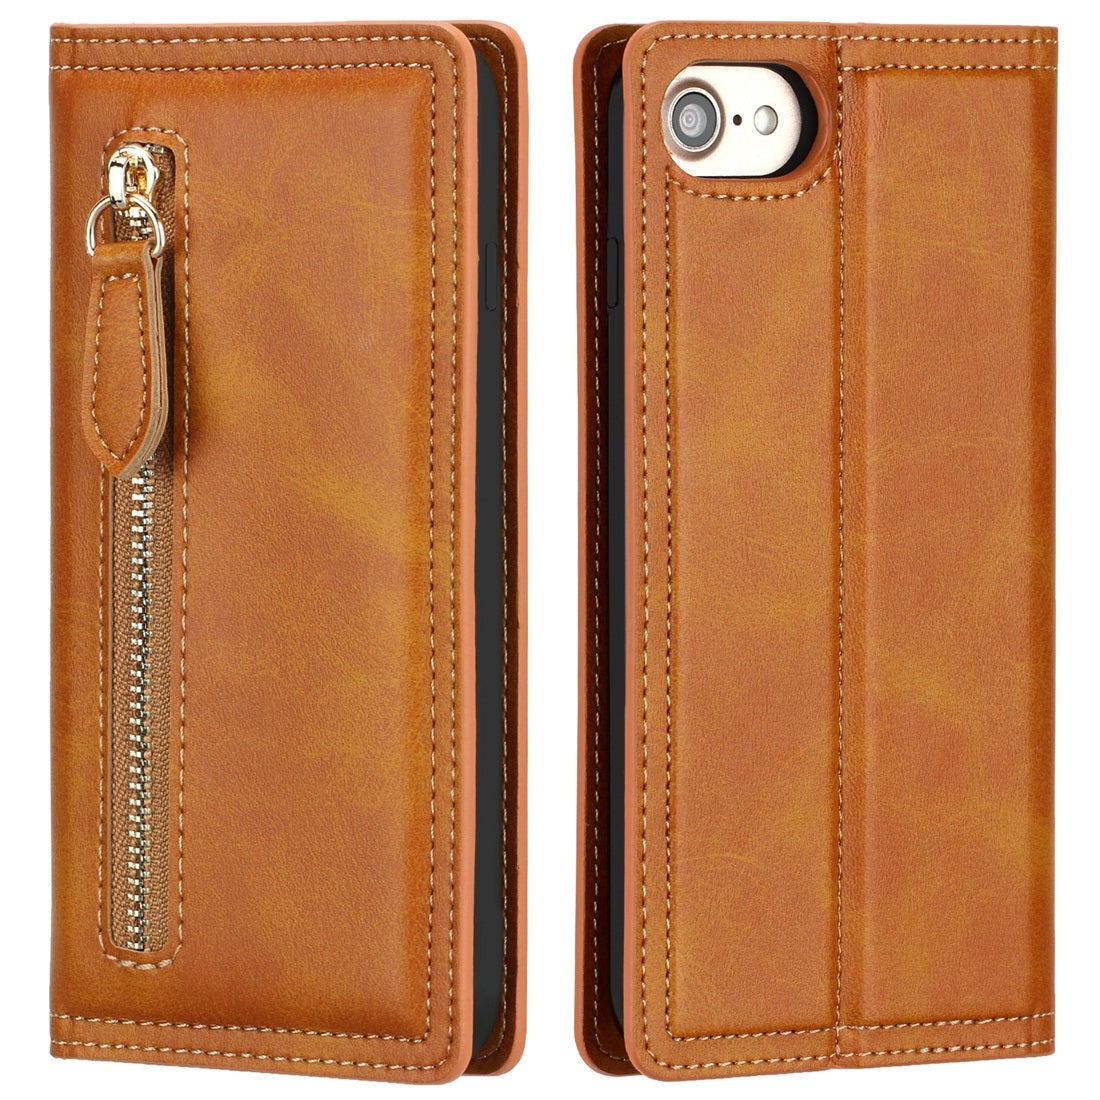 For iPhone 6 / 7 / 8 Skin Texture Magnetic Zipper Horizontal Flip Leather Case with Card Slot & Wallet(Orange)